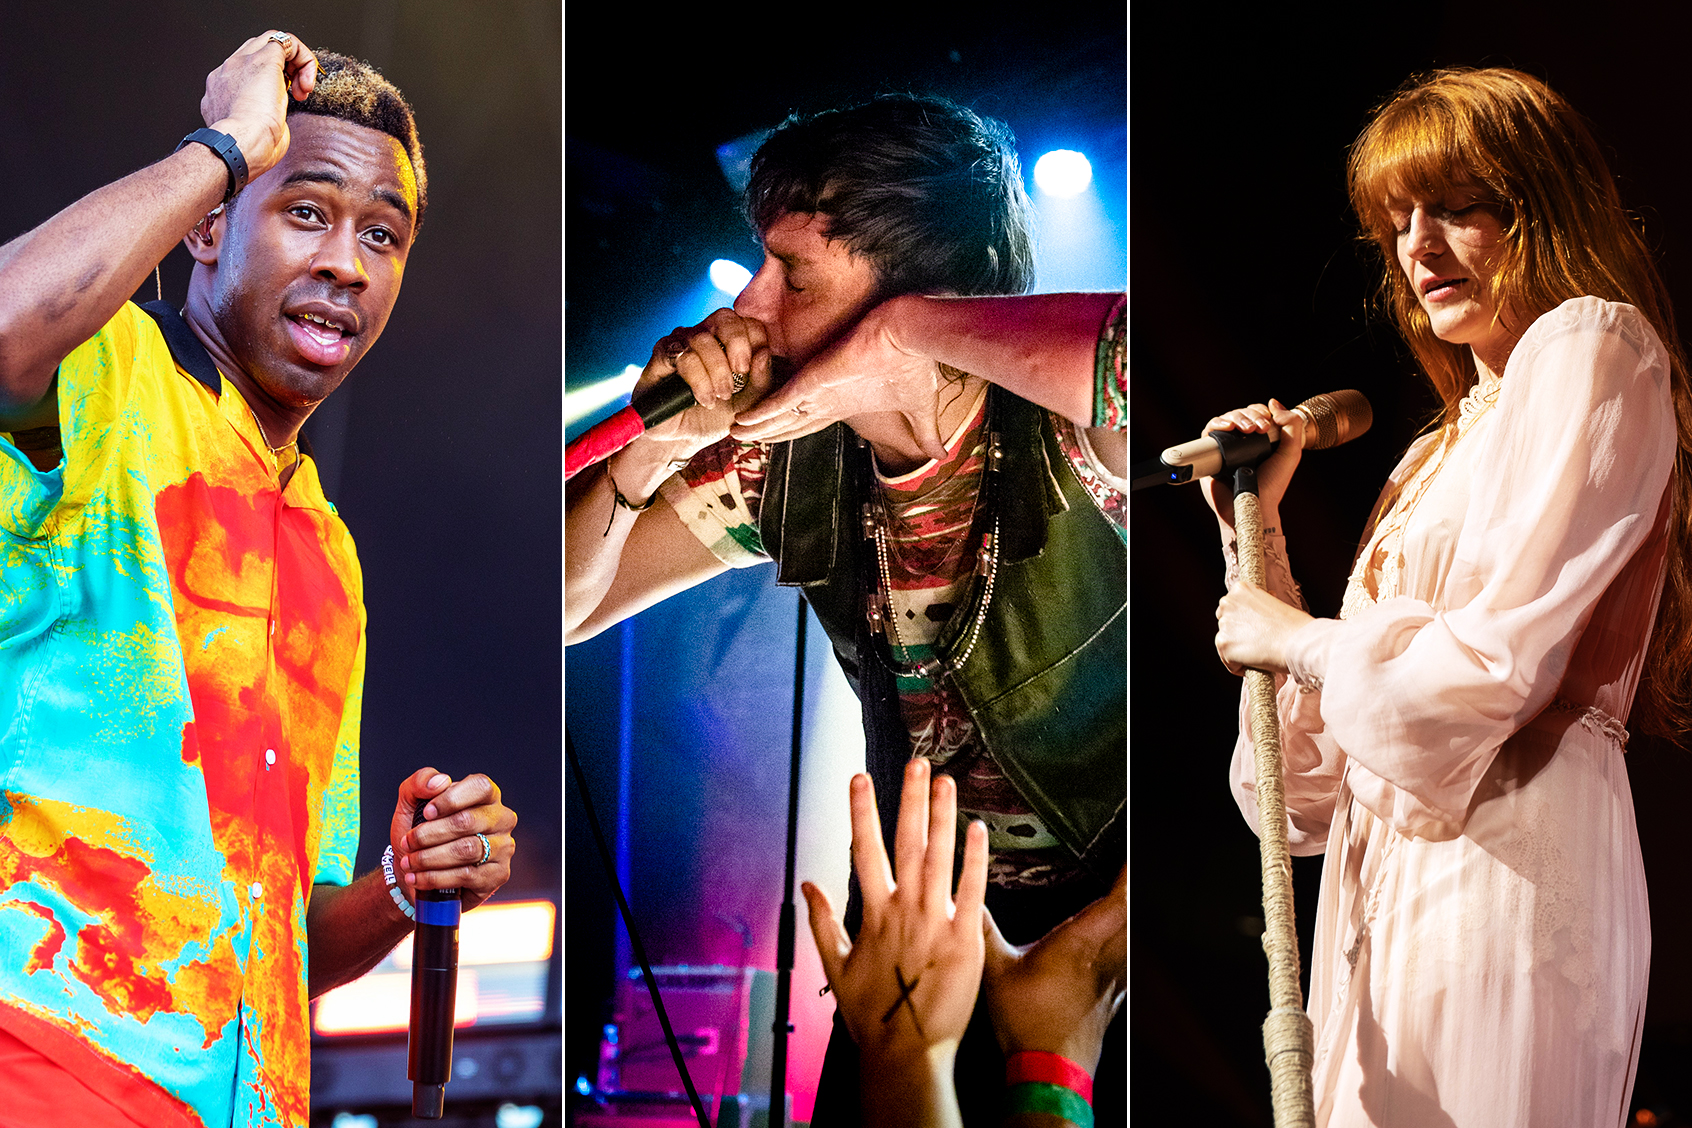 2019 Governors Ball: The Strokes, Florence and the Machine to